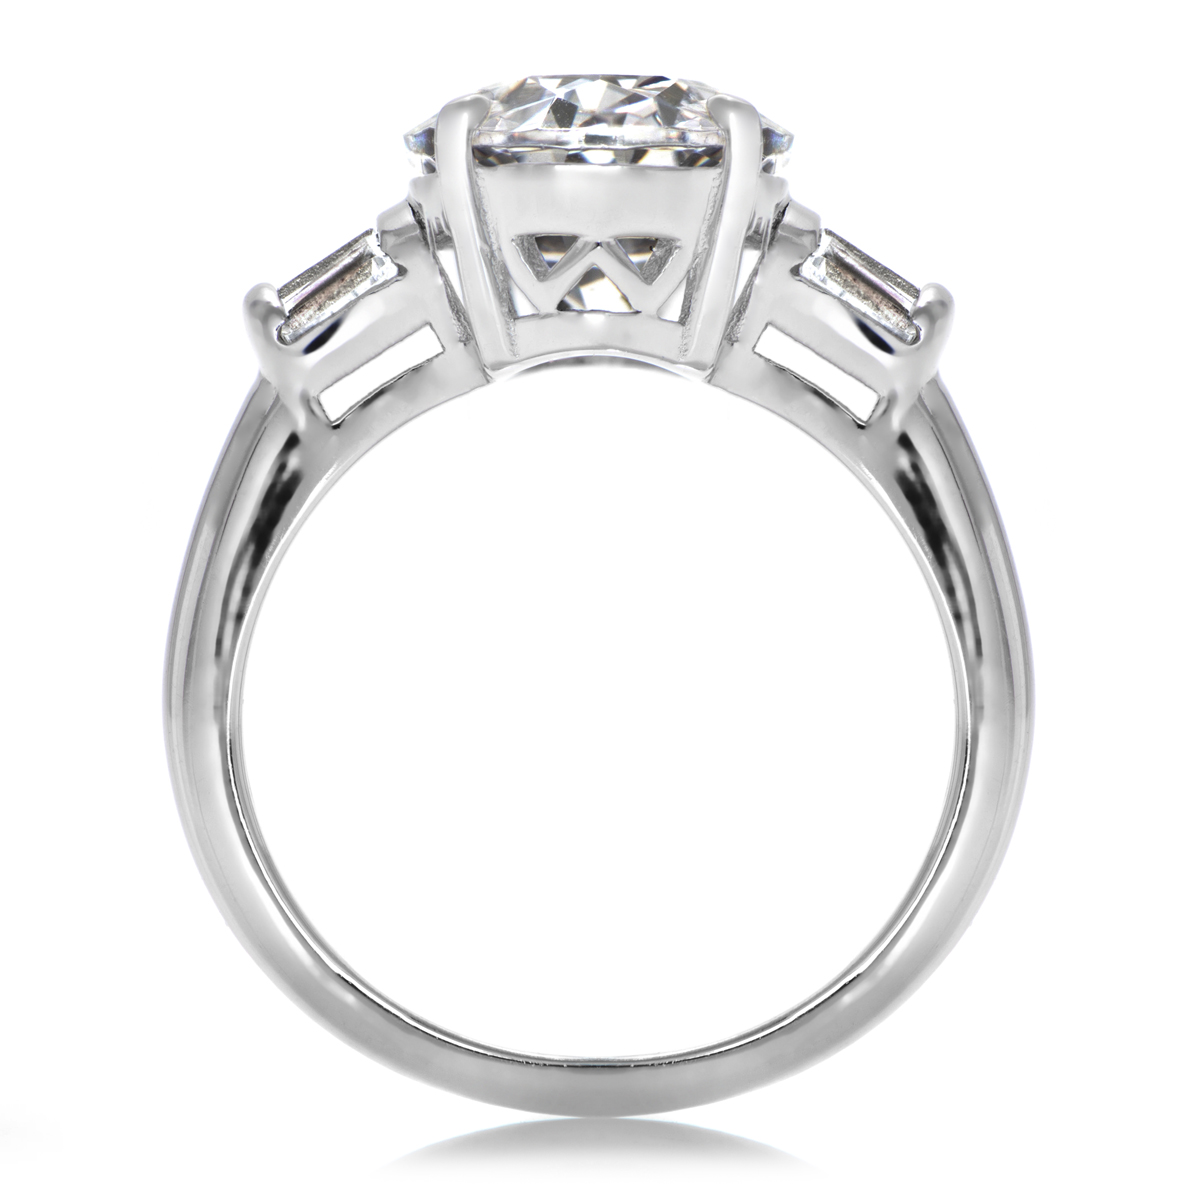 Ana s Simple Oval Cut Engagement Ring 6 Carats